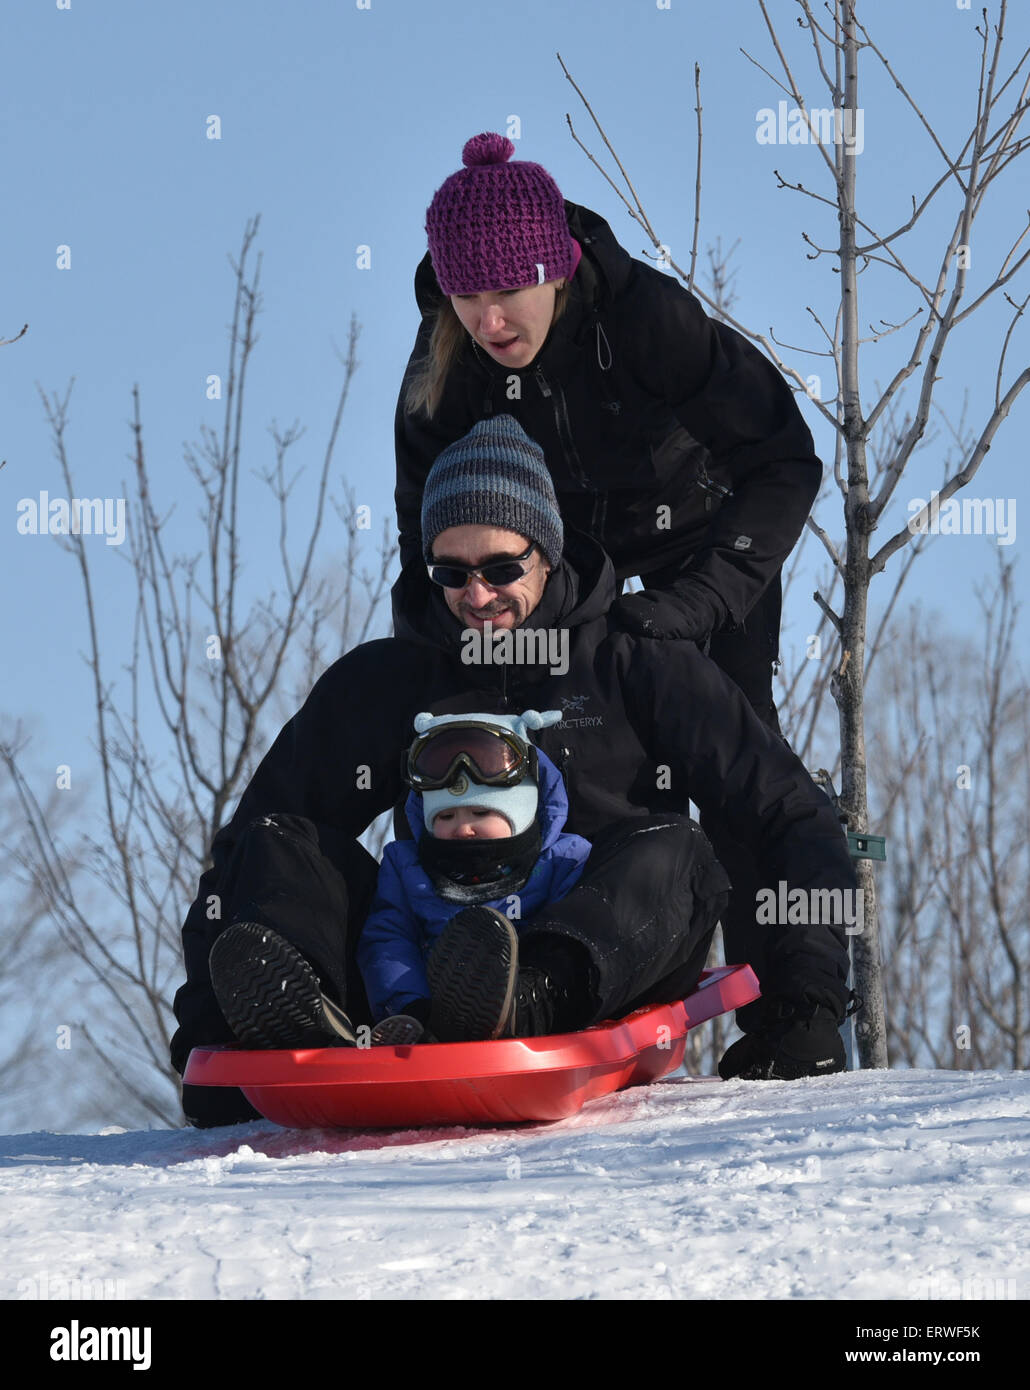 Mother pushing father and daughter on a sledge - Stock Image